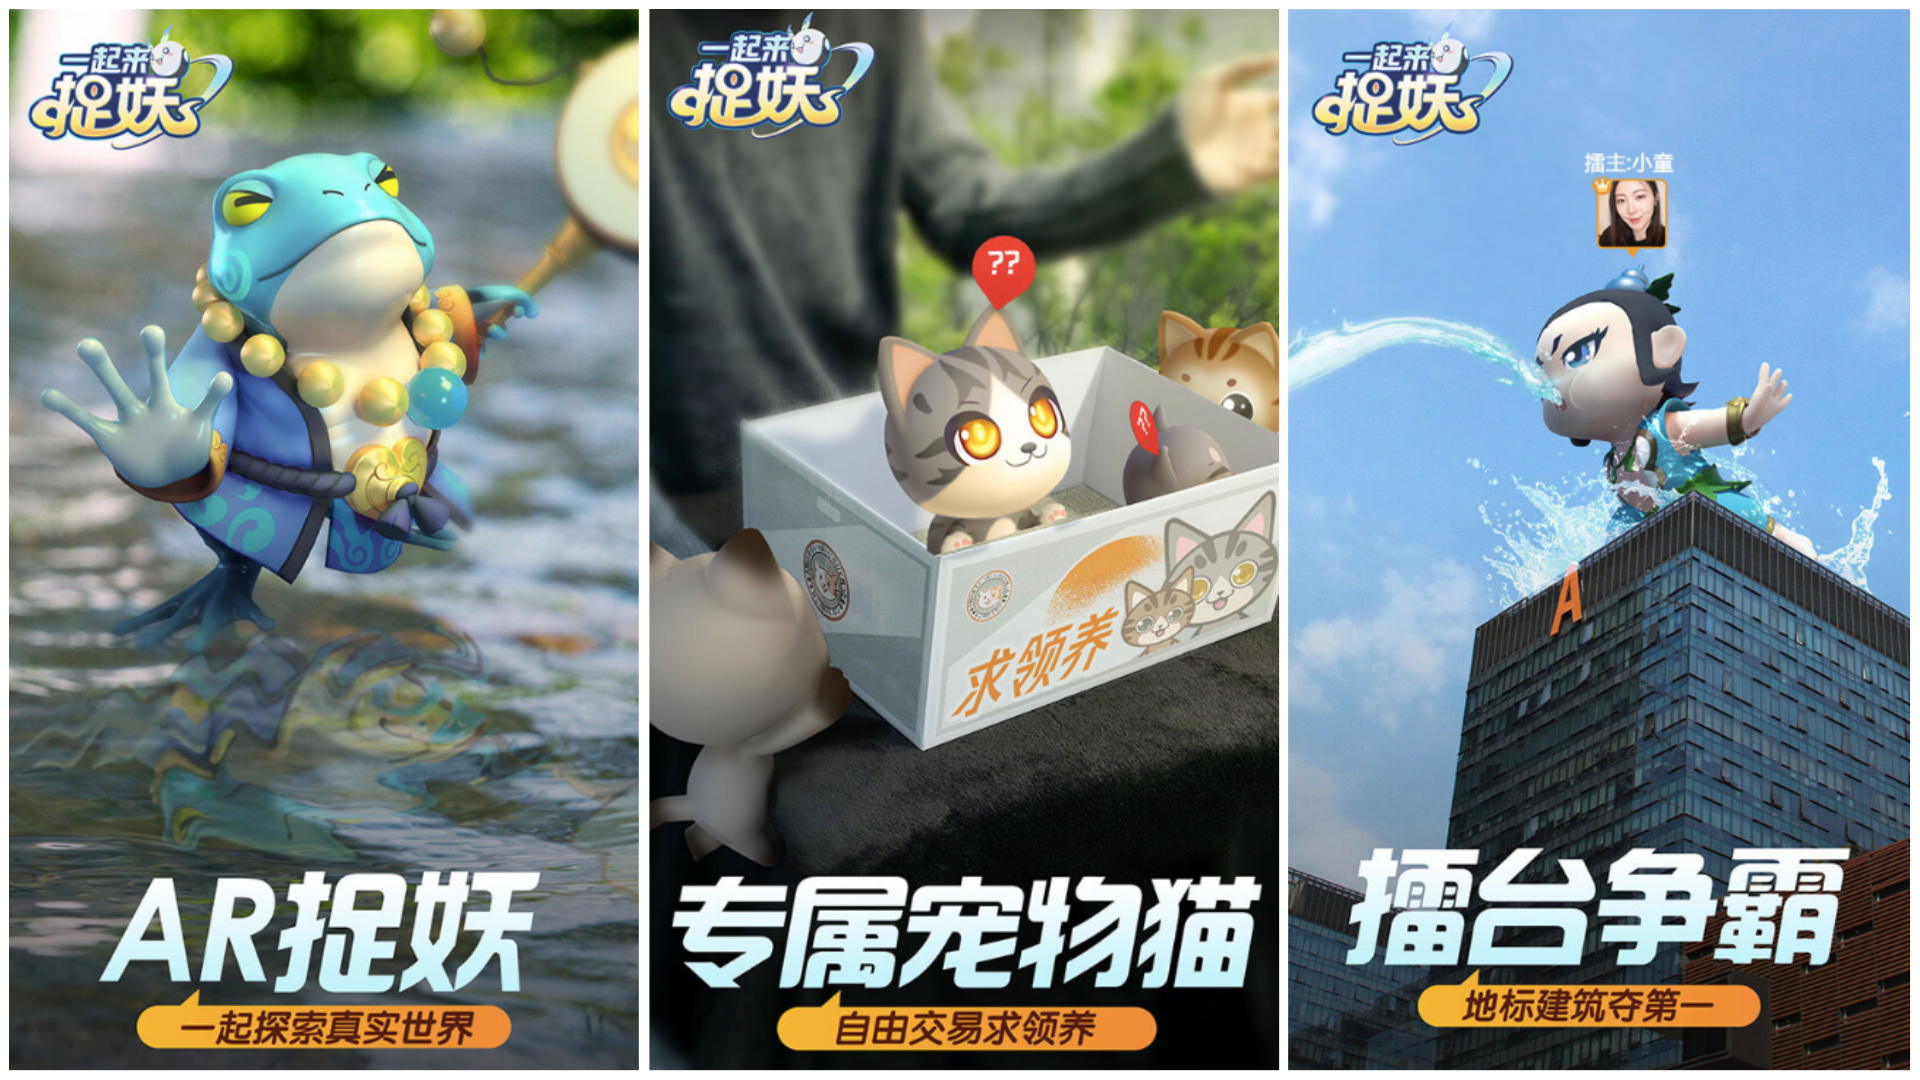 Tencent's latest game merges CryptoKitties and Pokémon Go